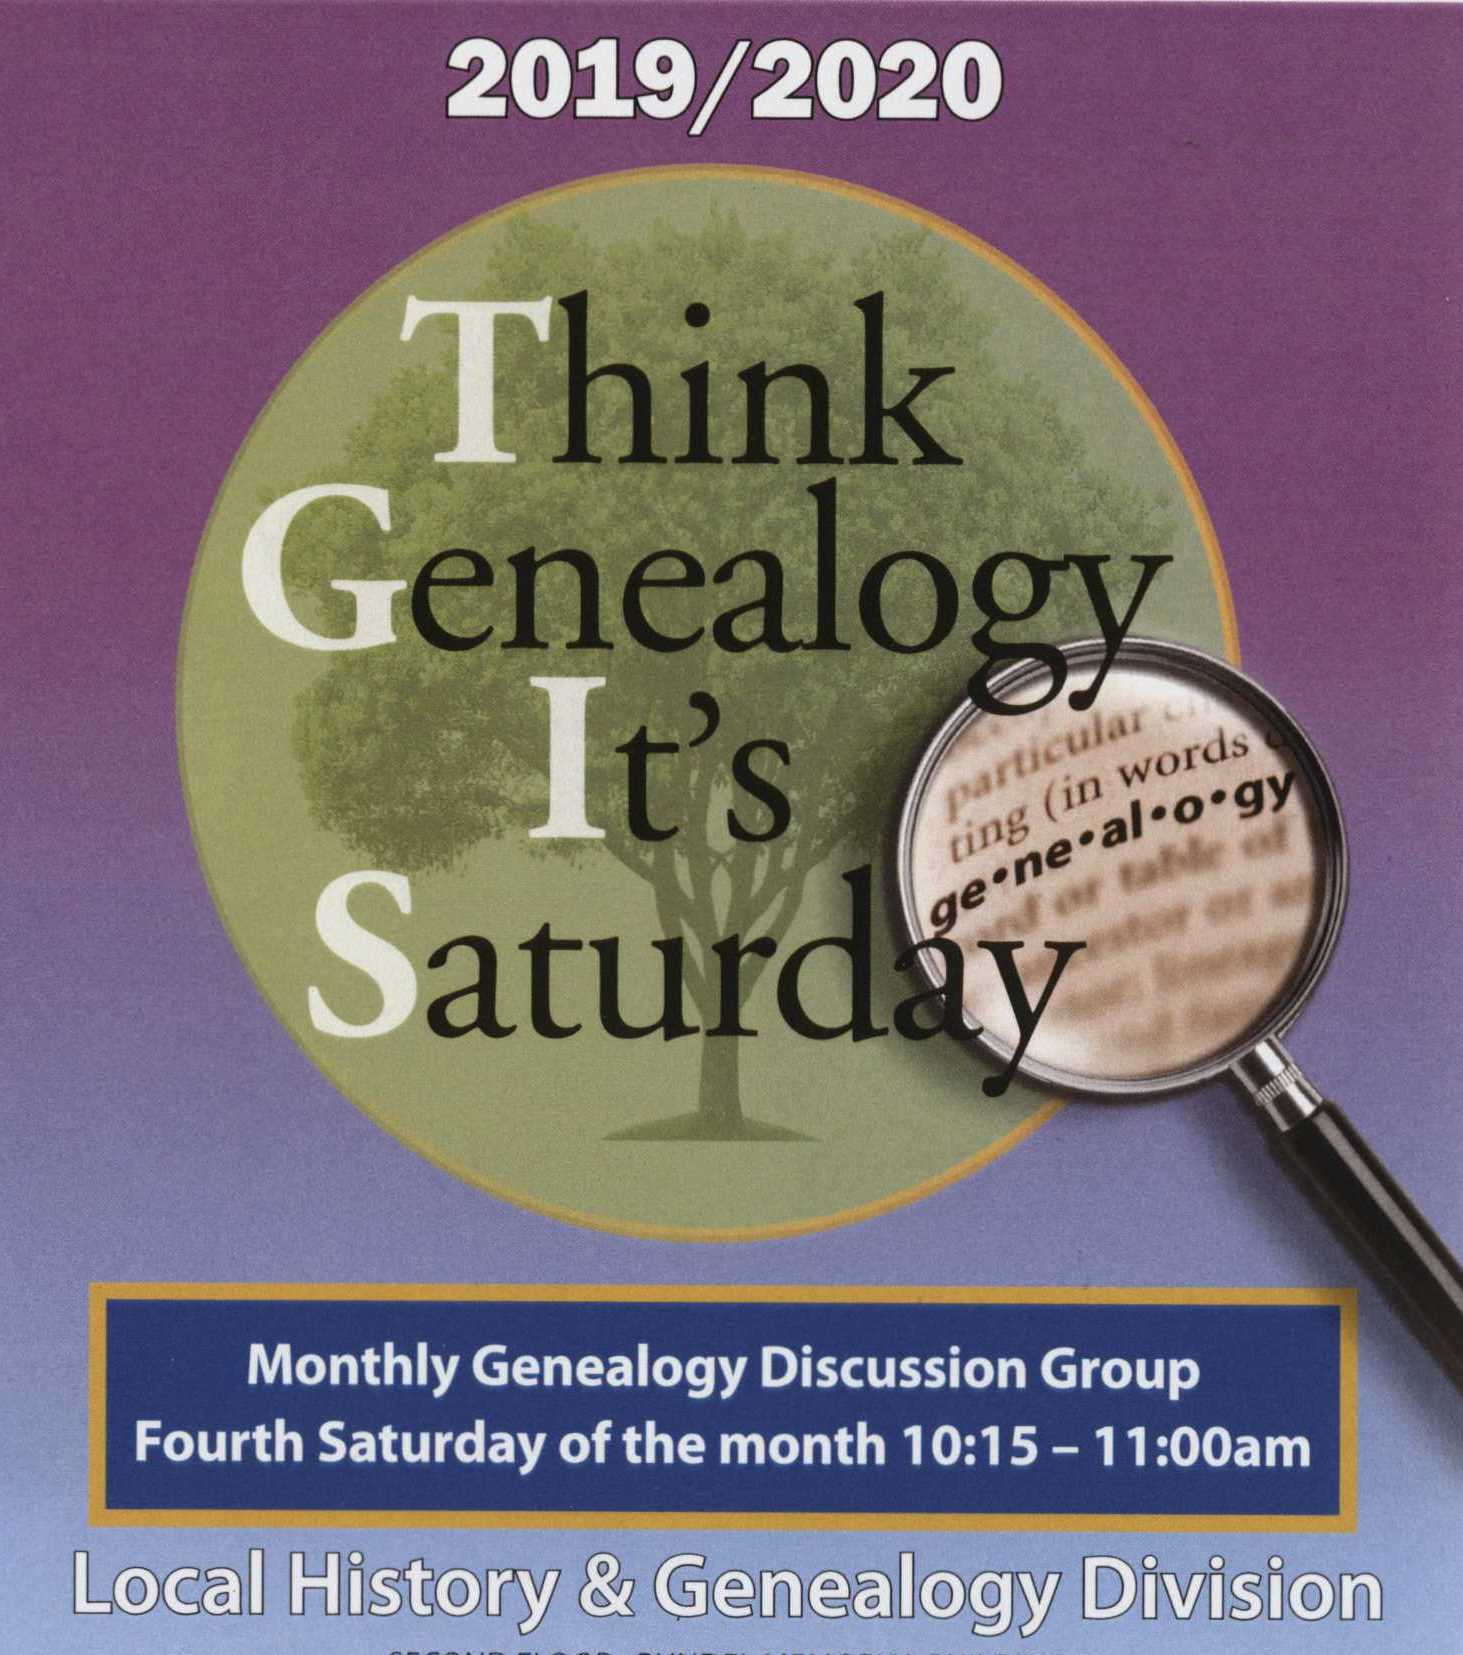 T.G.I.S. - Think Genealogy It's Saturday